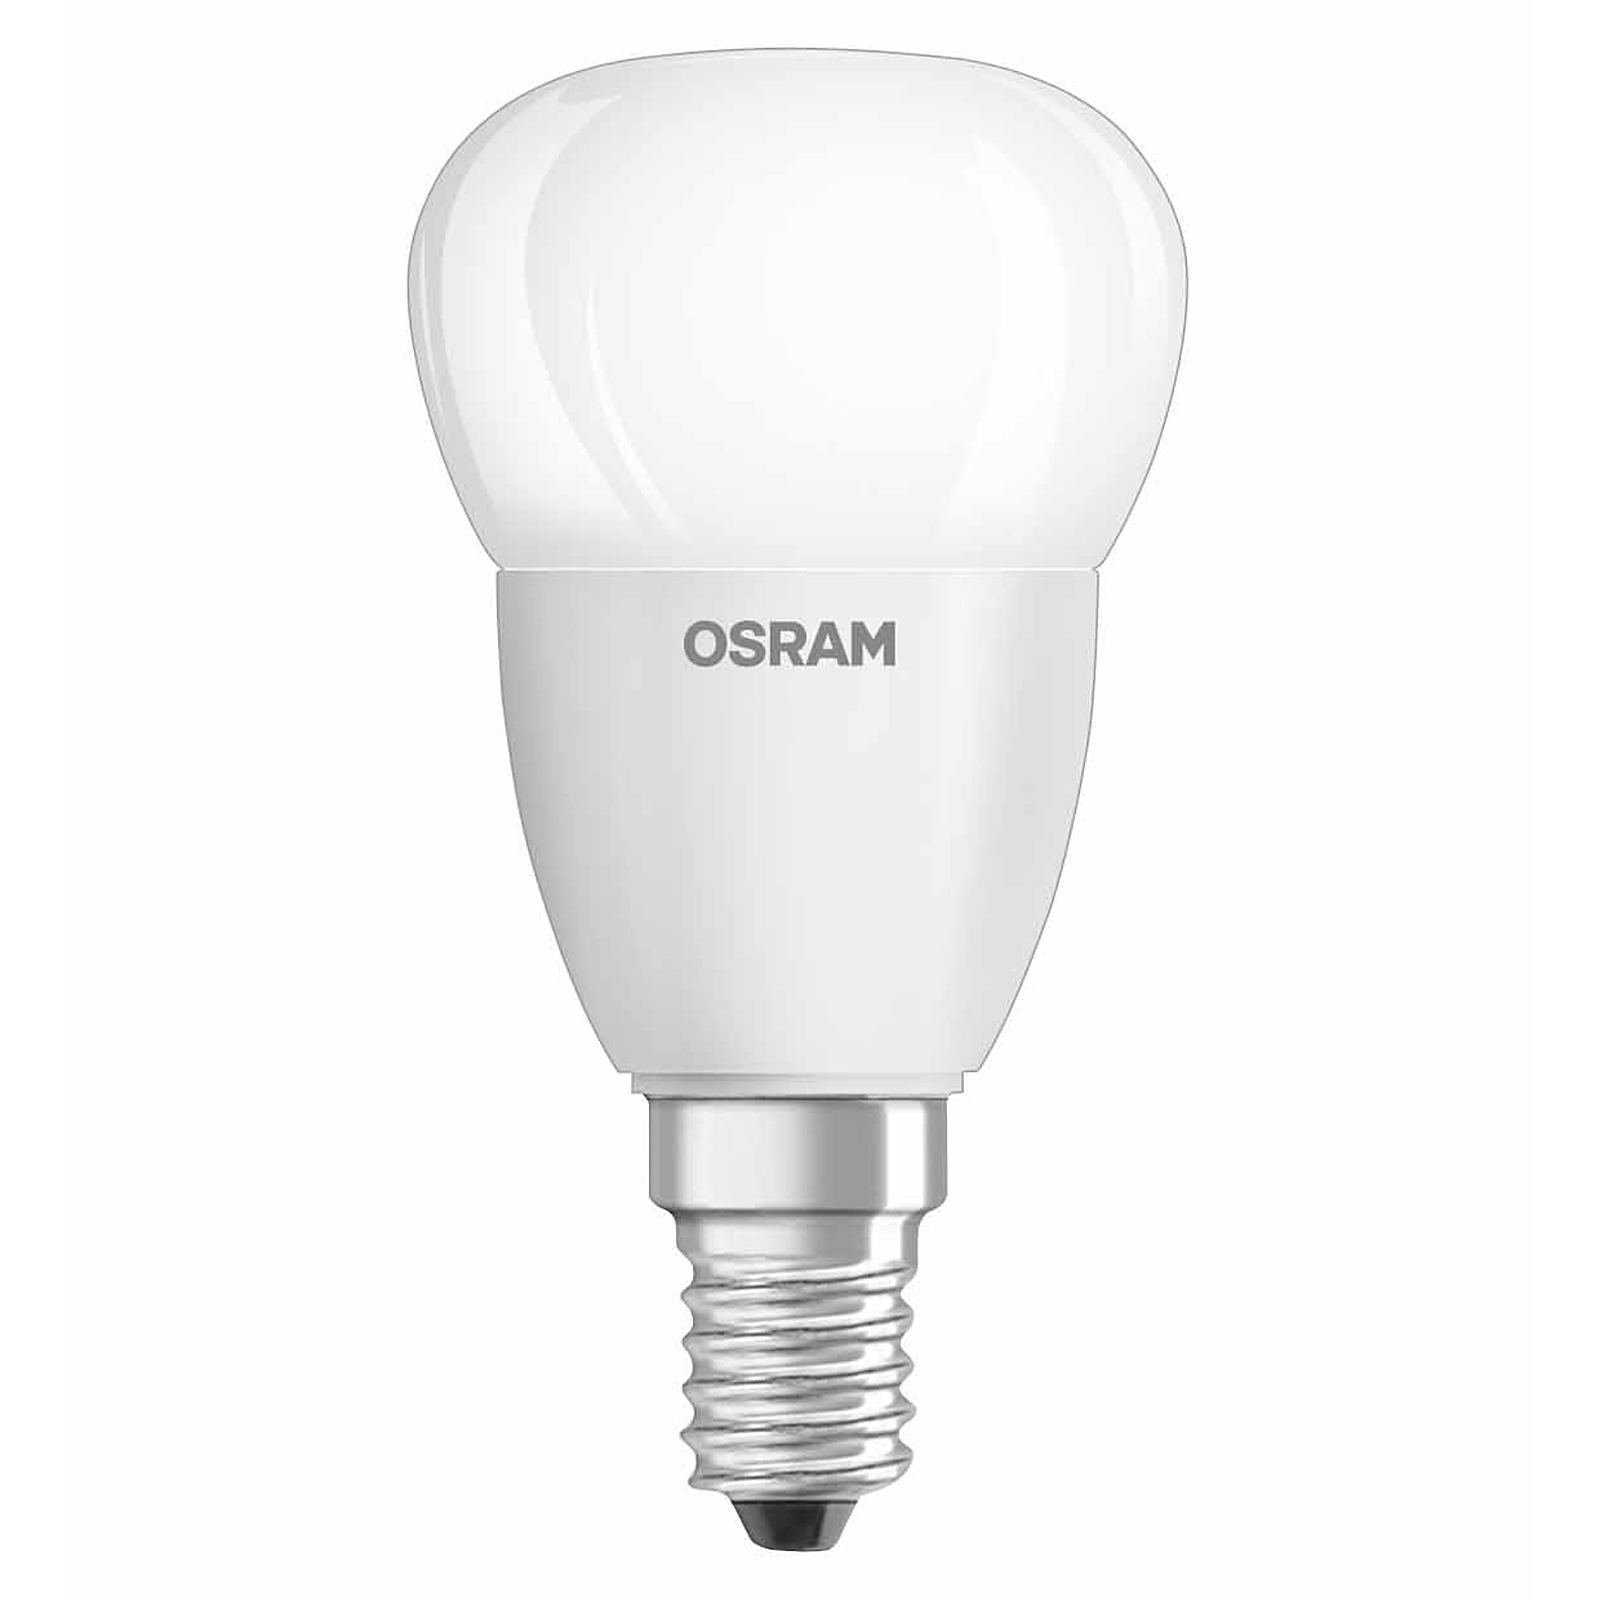 osram led star classic p 40 e14 5 7 watt ersatz f r 40 watt 470 lumen warmwei. Black Bedroom Furniture Sets. Home Design Ideas